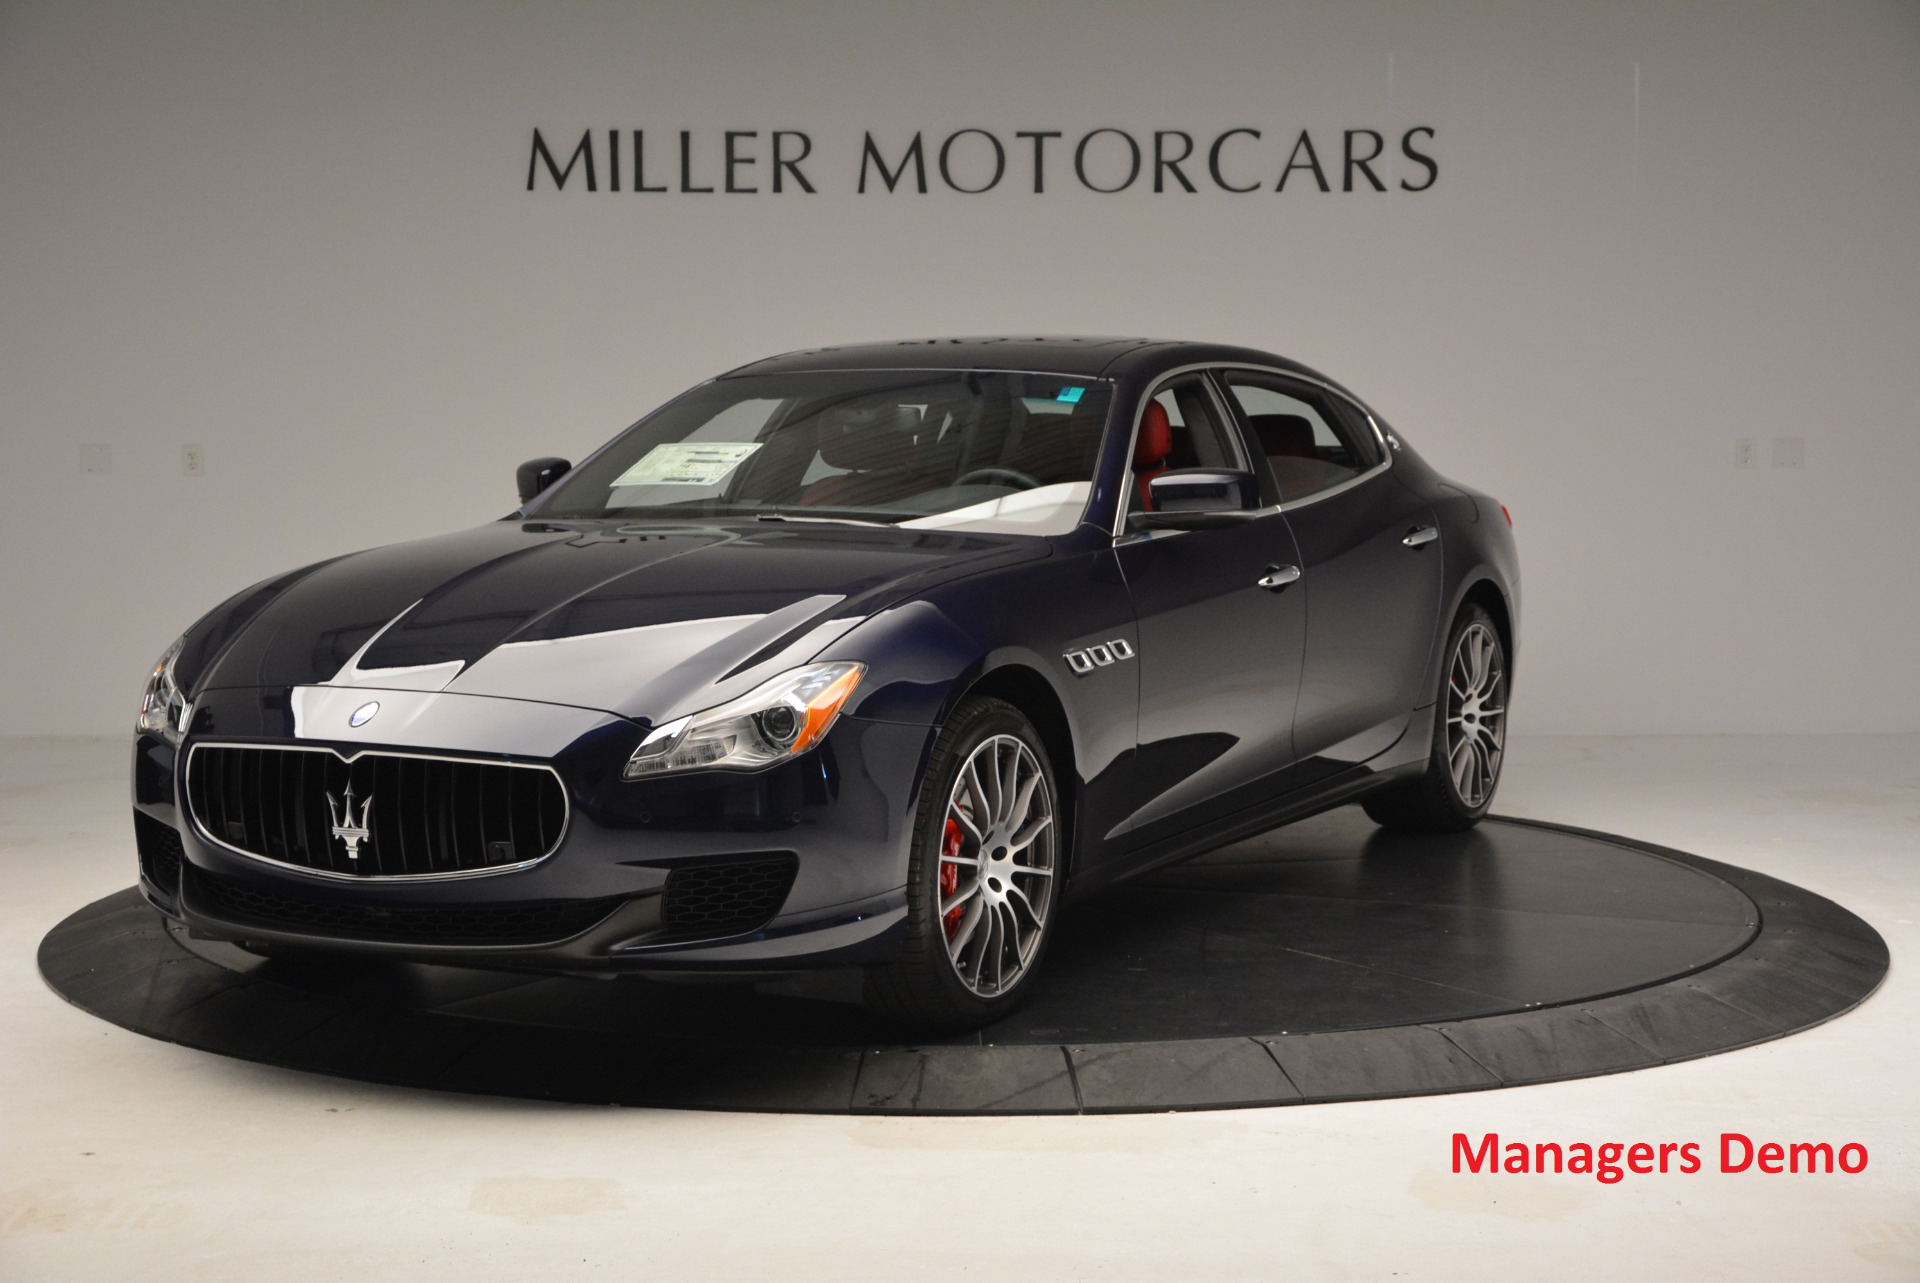 New 2016 Maserati Quattroporte S Q4  *******      DEALER'S  DEMO For Sale In Westport, CT 185_main